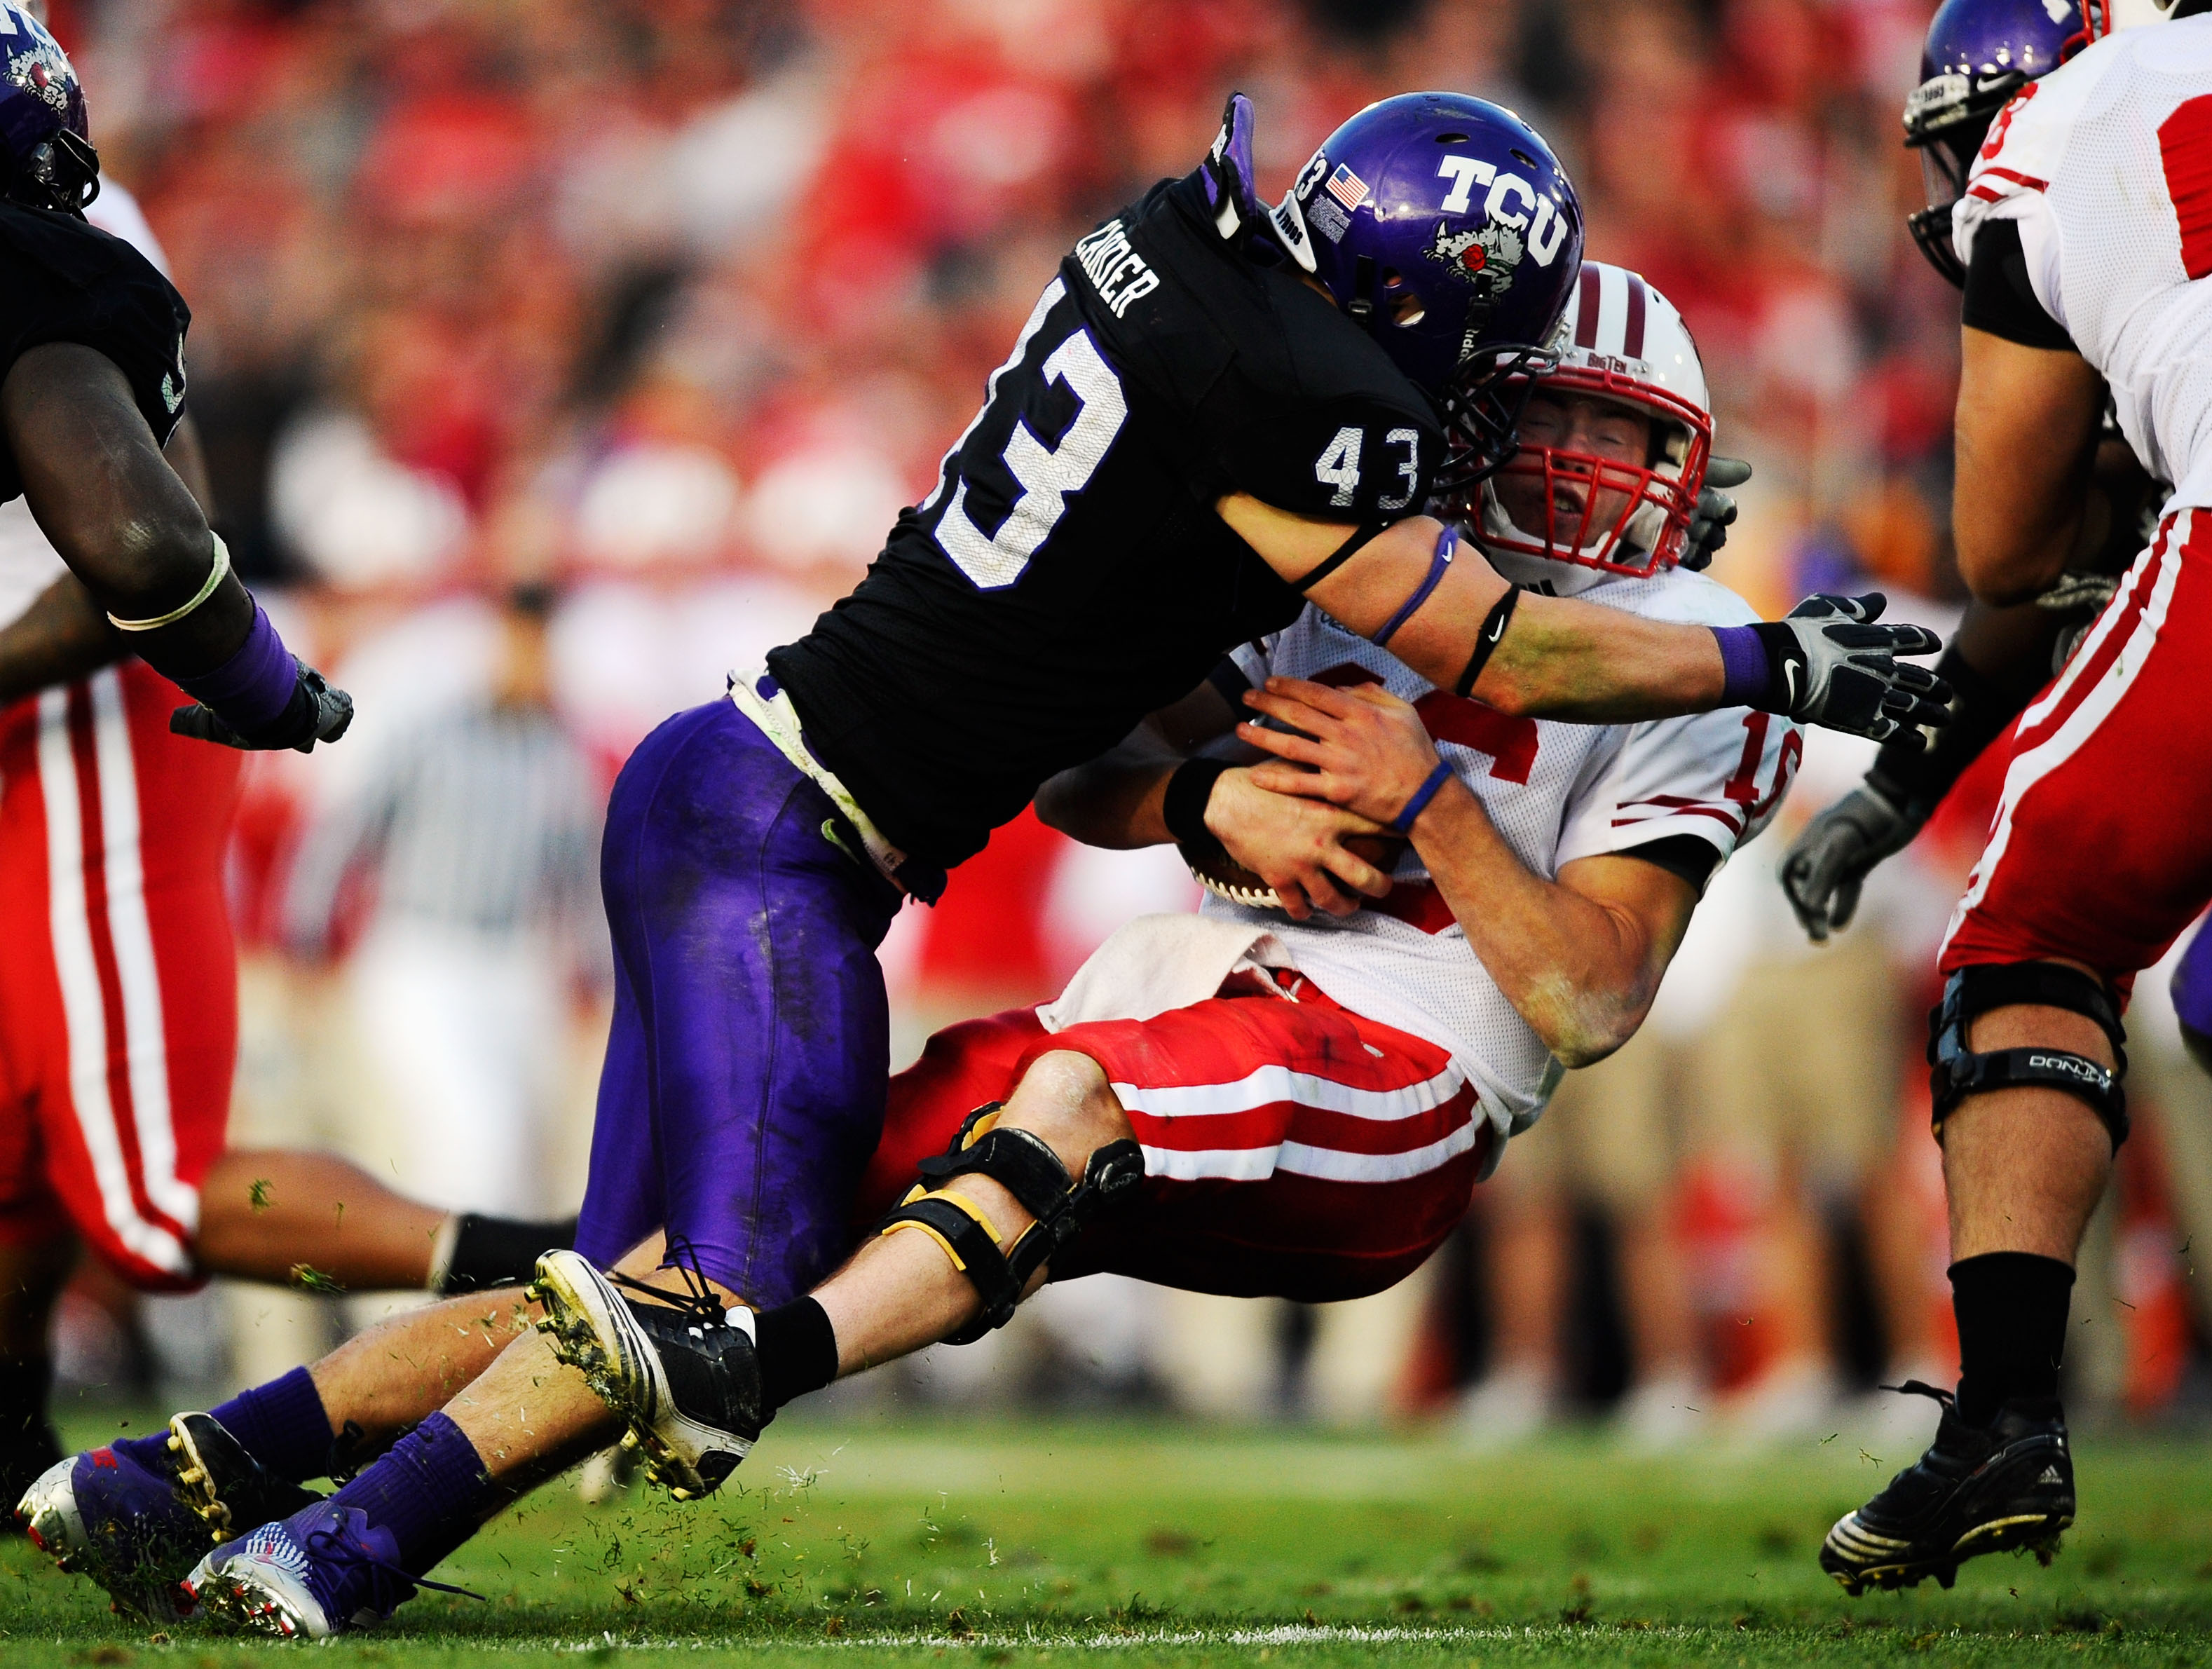 PASADENA, CA - JANUARY 01:  Quarterback Scott Tolzien #16 of the Wisconsin Badgers is sacked by linebacker Tank Carder #43 of the TCU Horned Frogs during the 97th Rose Bowl game on January 1, 2011 in Pasadena, California.  (Photo by Kevork Djansezian/Gett